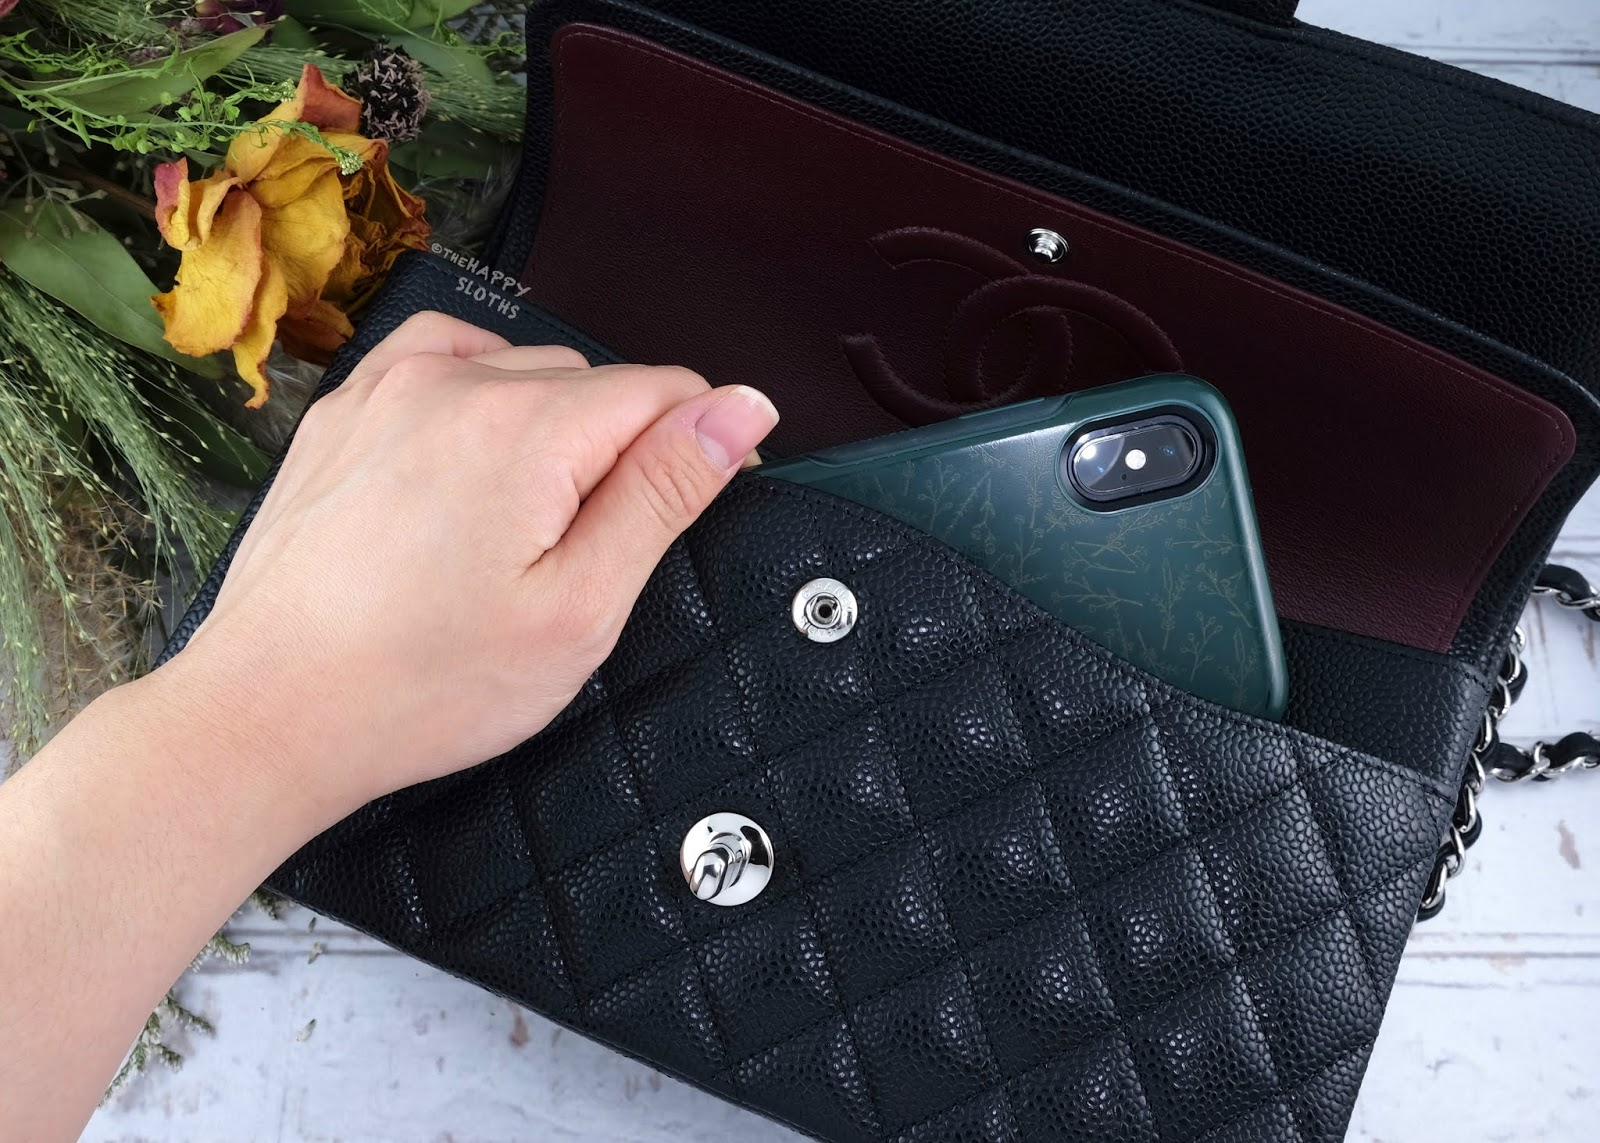 Chanel   Medium Classic Flap Handbag in Black Caviar Leather with Silver Hardware   Front Slip Pocket: Review